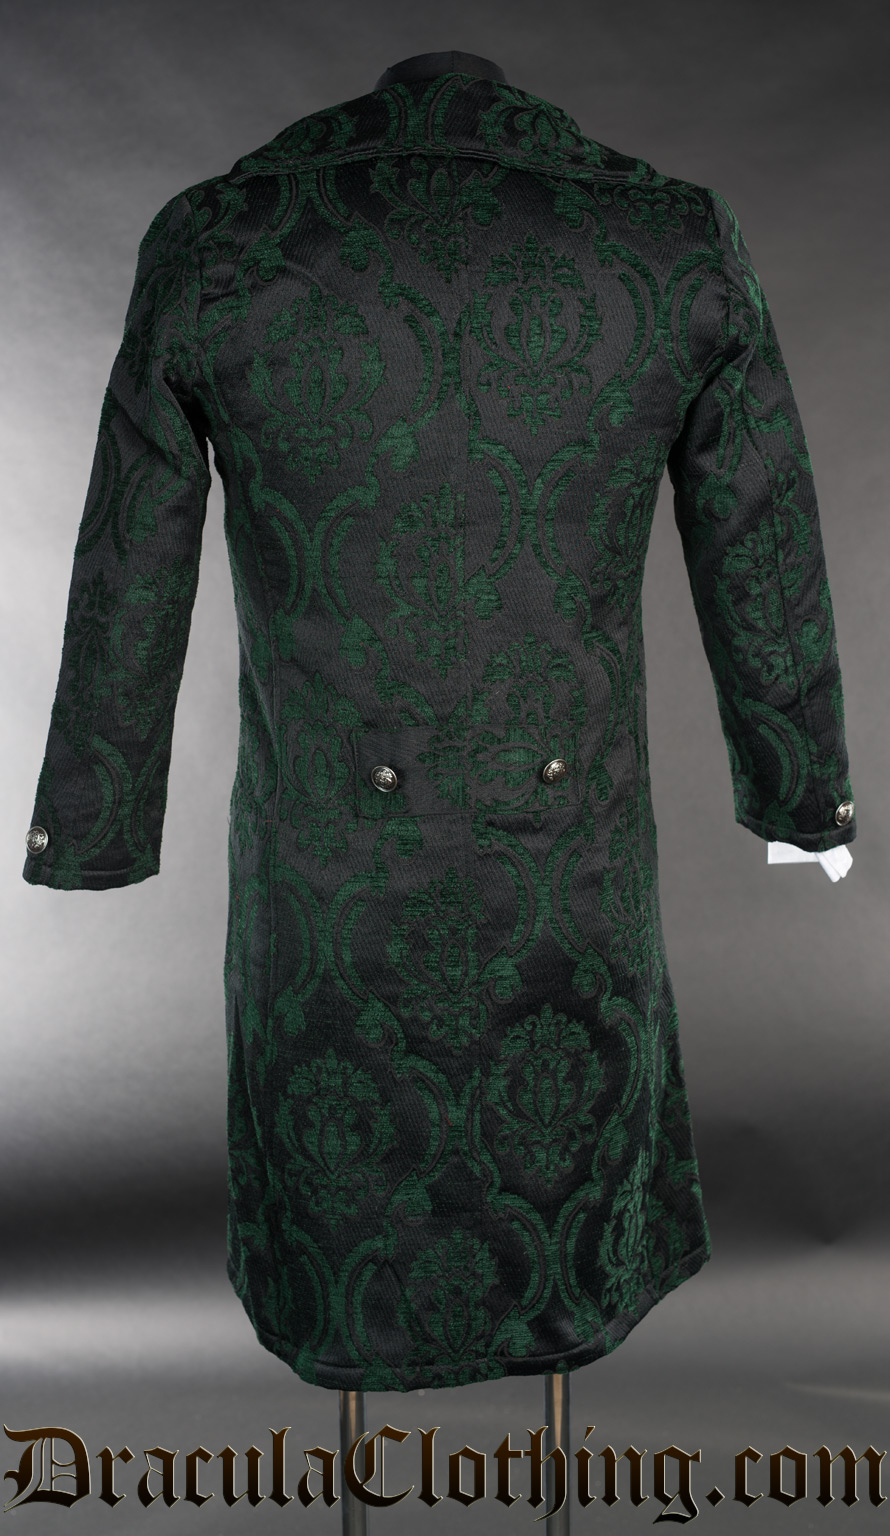 Green Brocade Tailcoat